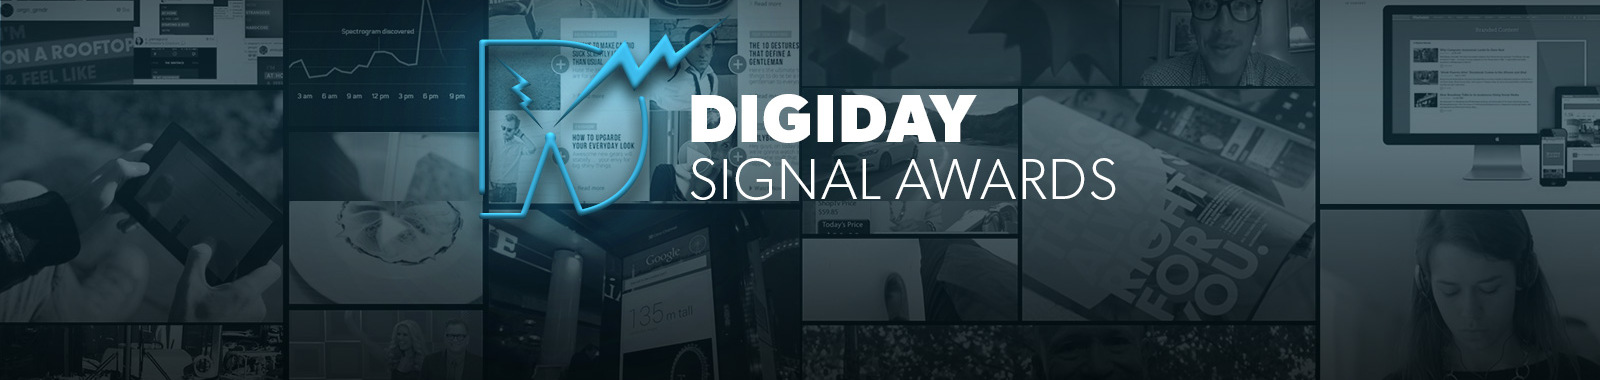 MarketShare Named a Digiday Signal Awards Finalist